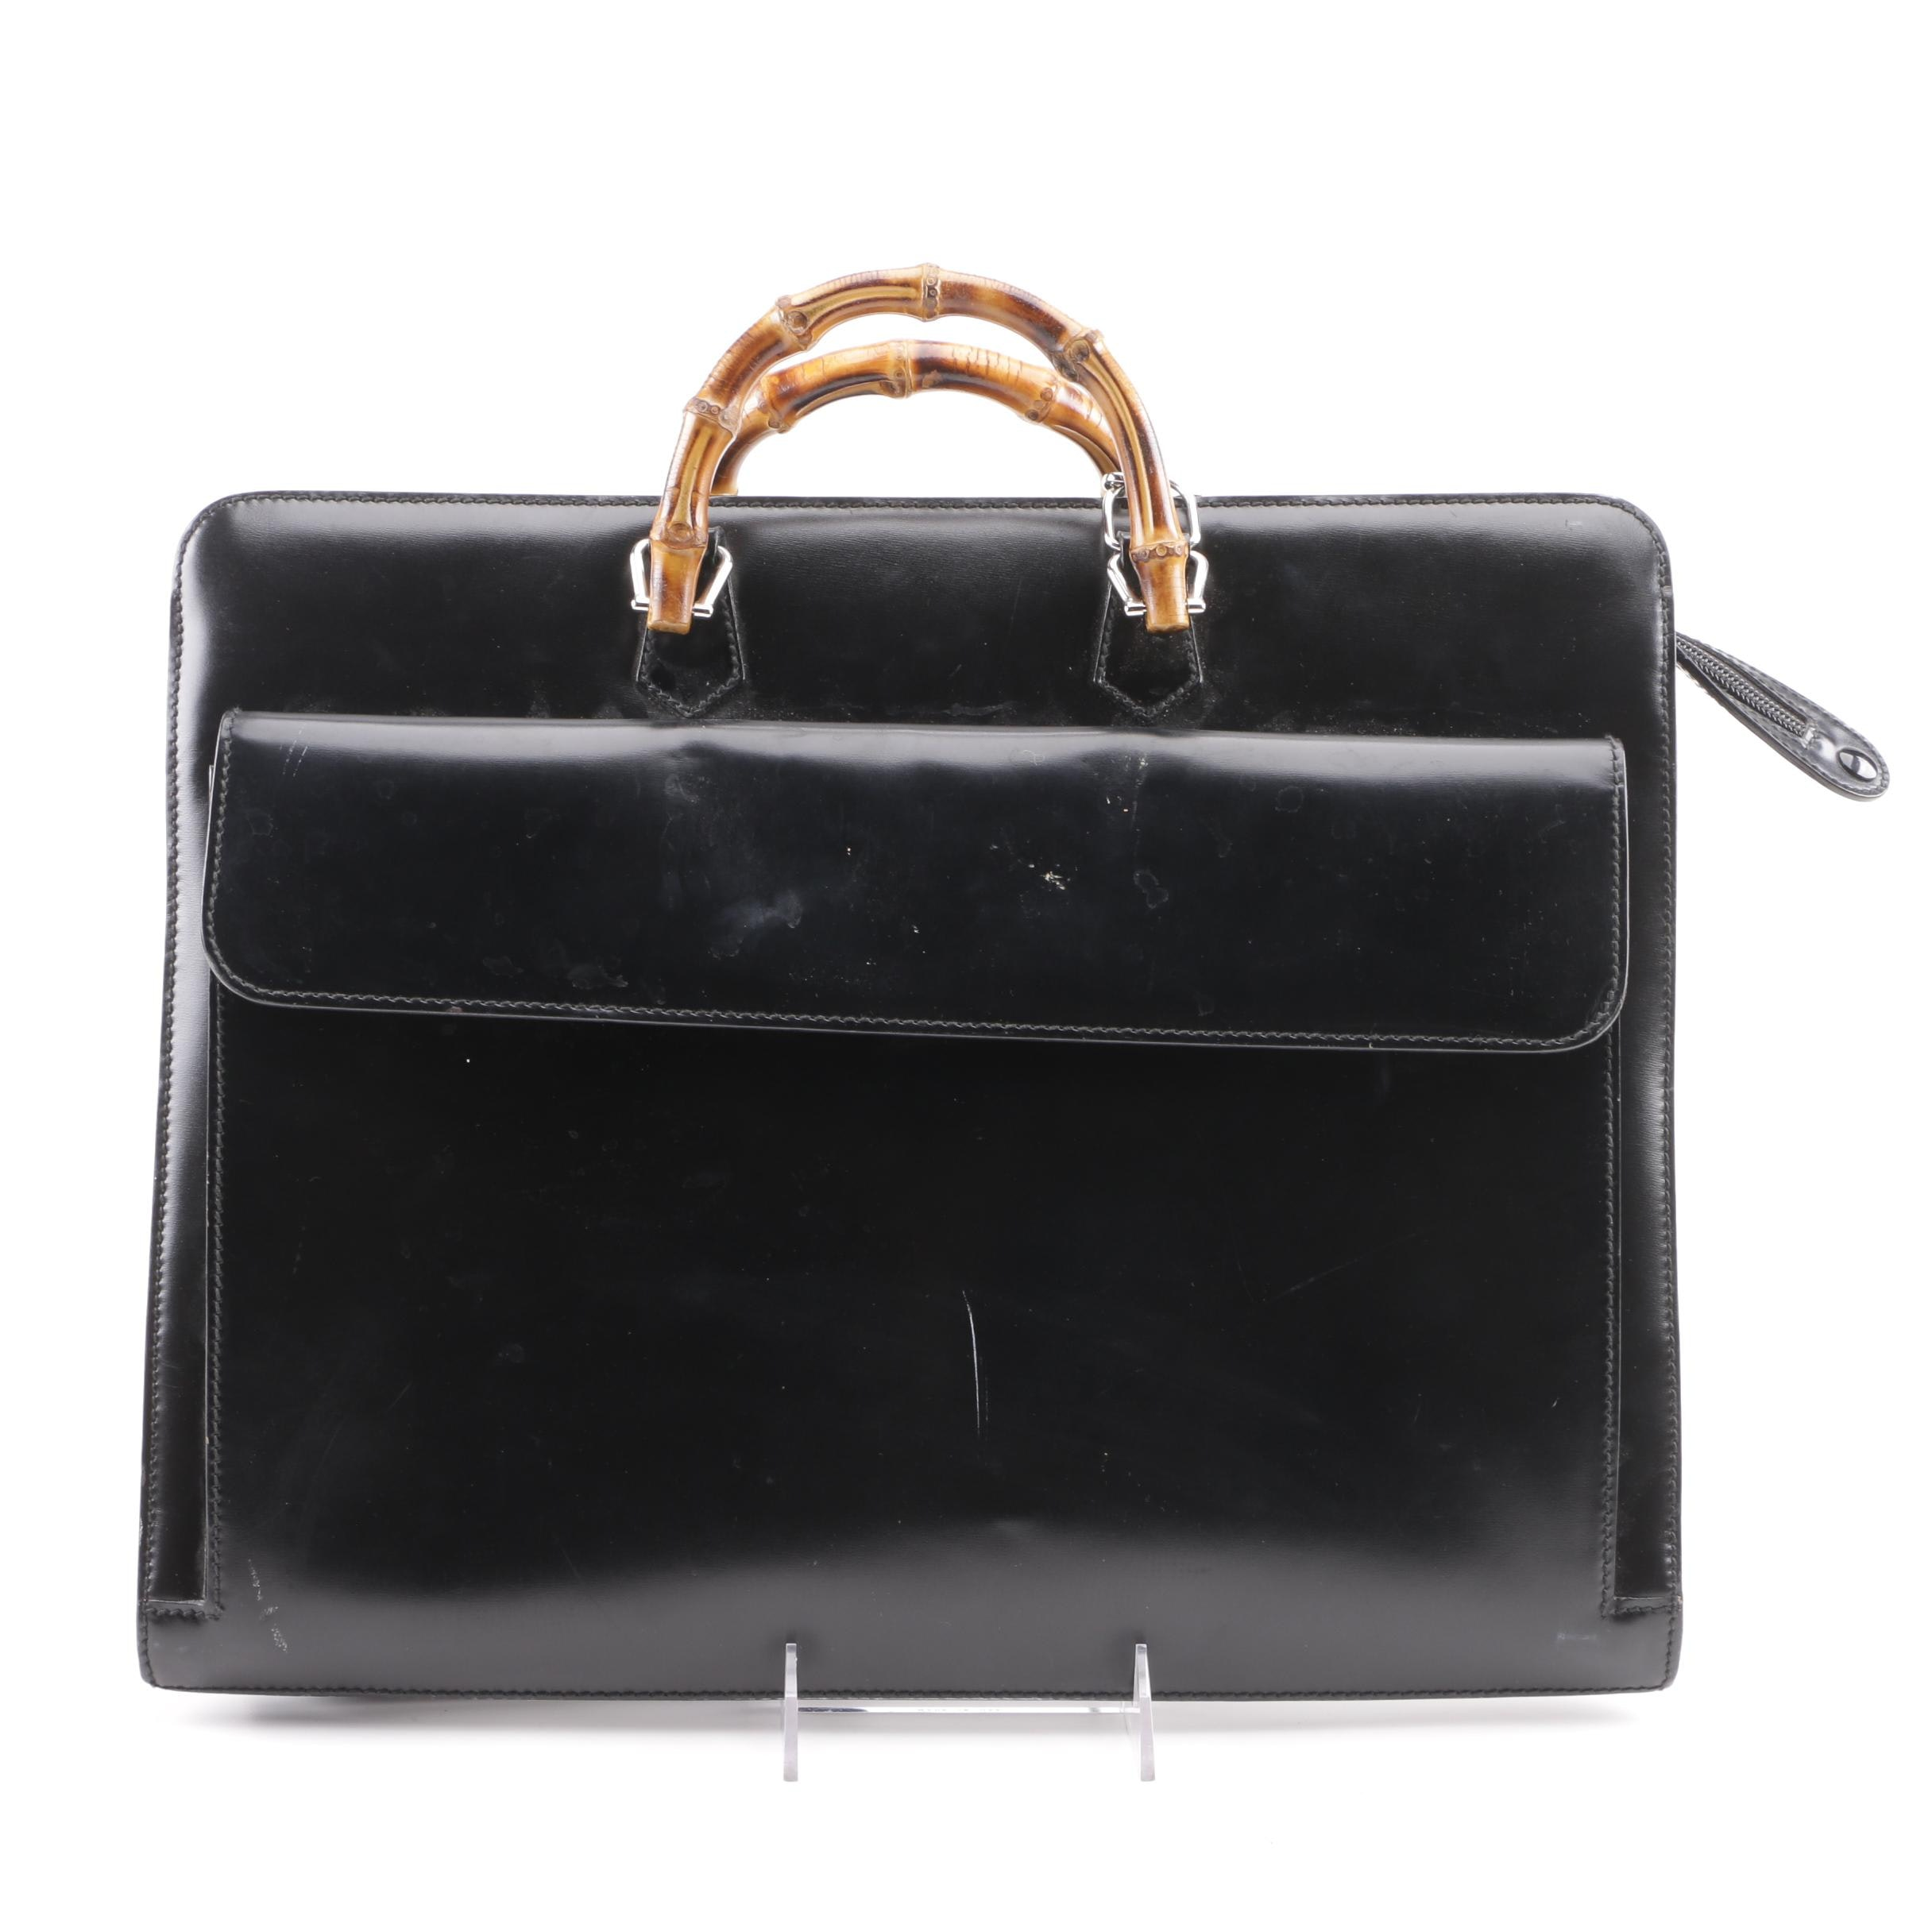 Gucci Black Leather Briefcase with Bamboo Handles